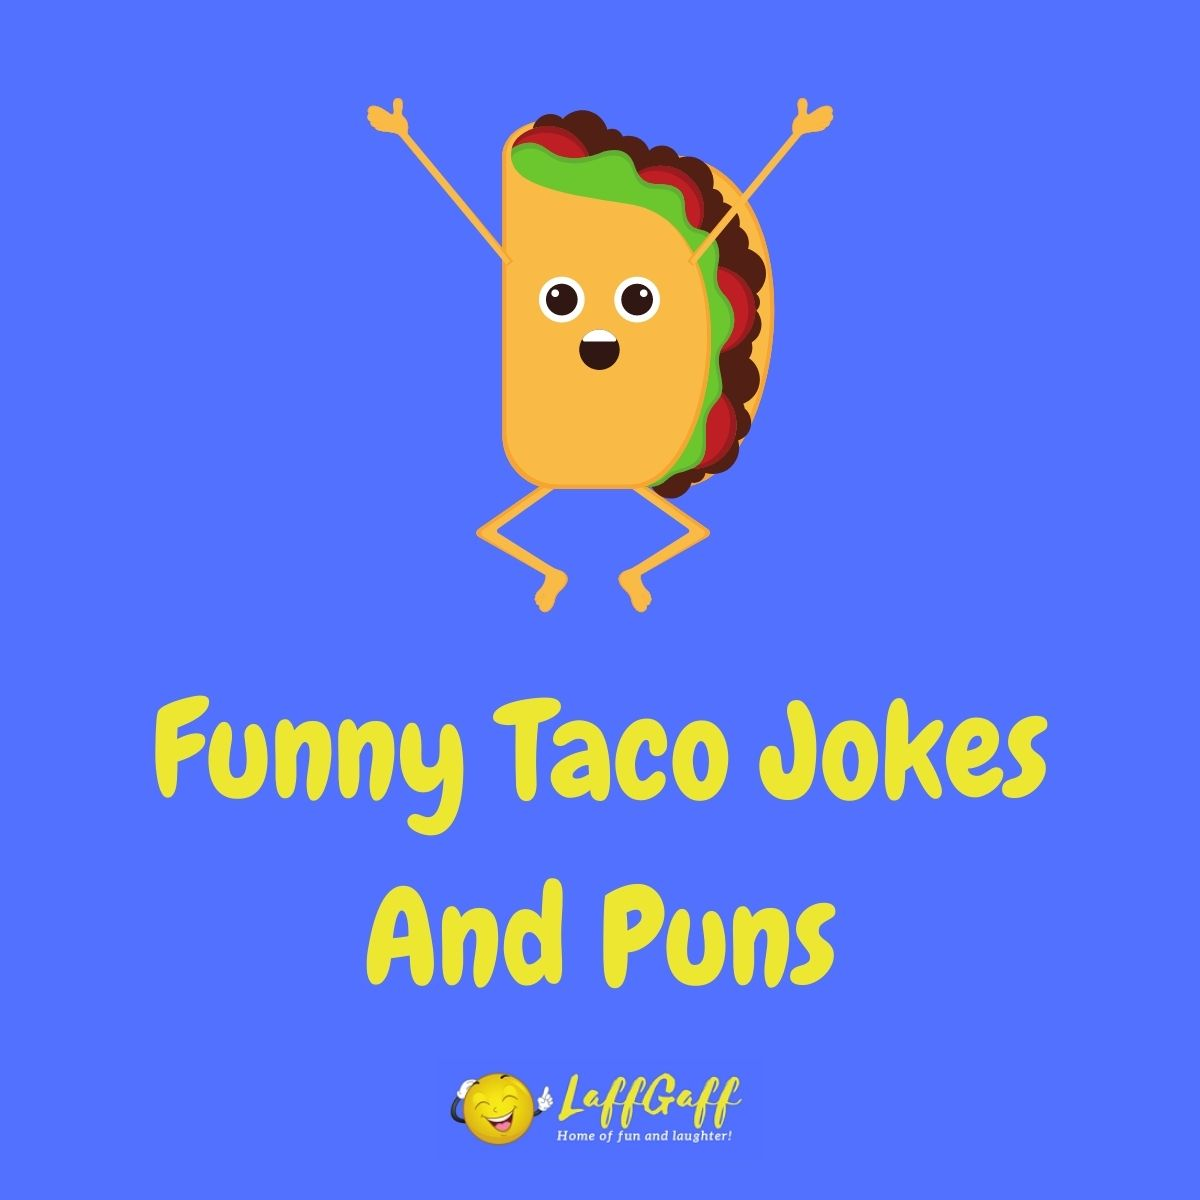 Featured image for a page of funny taco jokes and puns.